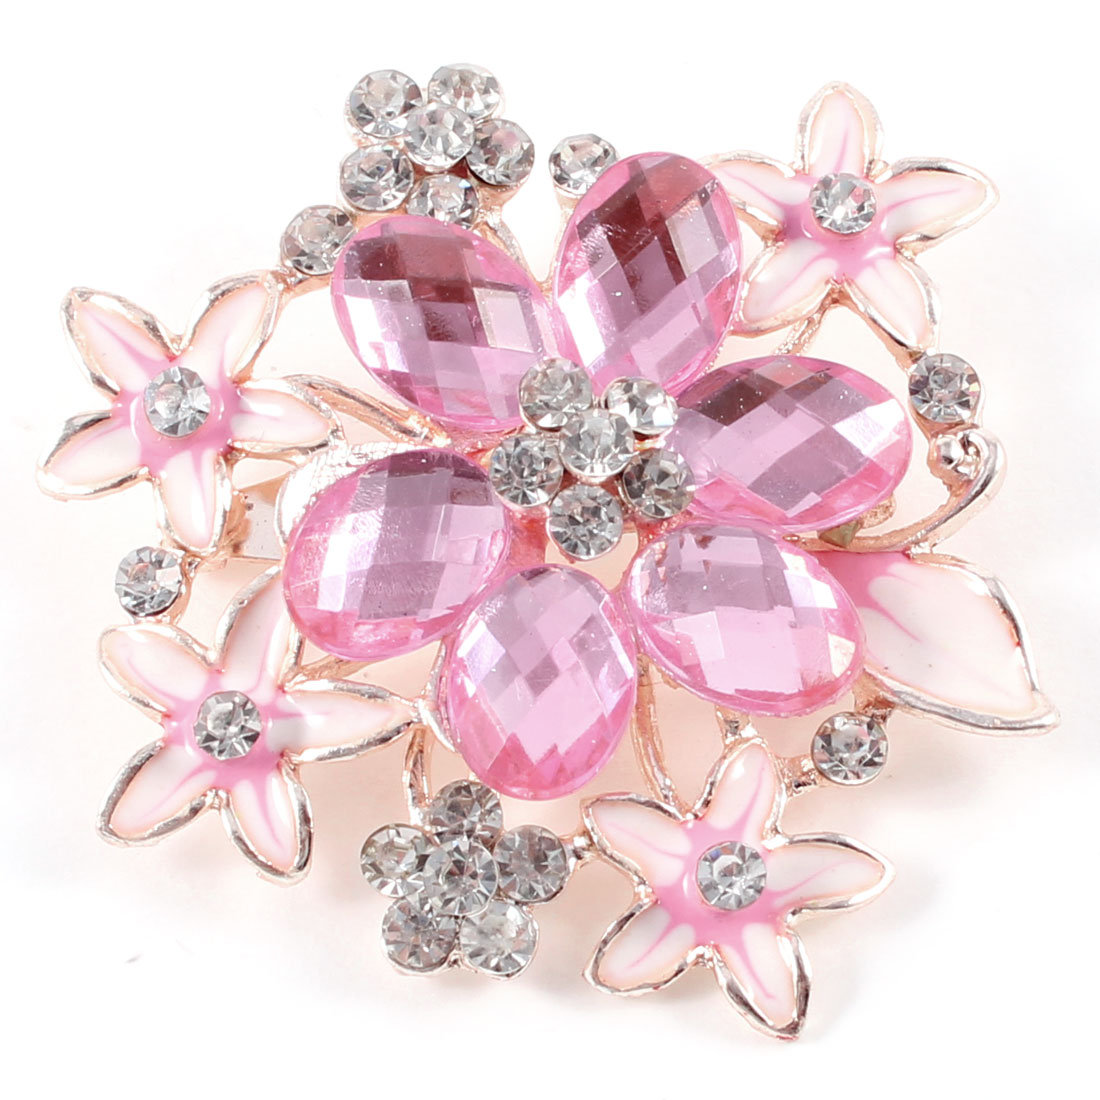 Lady Plastic Crystal Decor Flower Style Brooch Breast Pin Pink Silver Tone